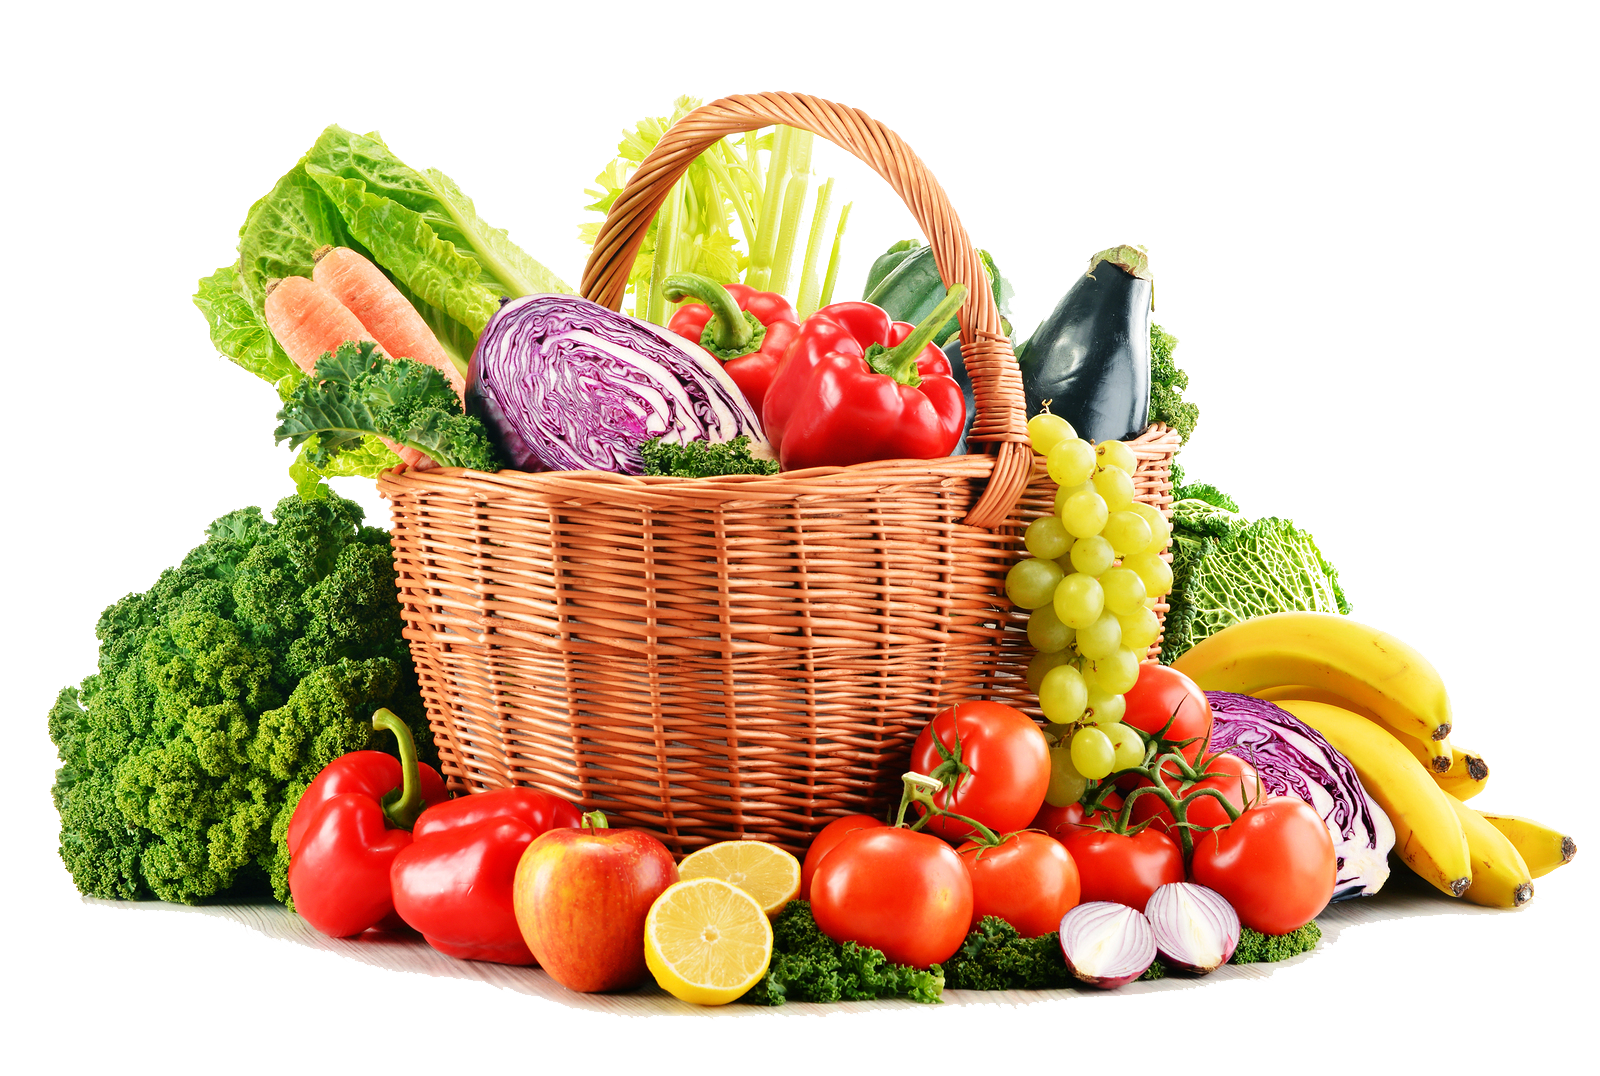 Vegetable PNG